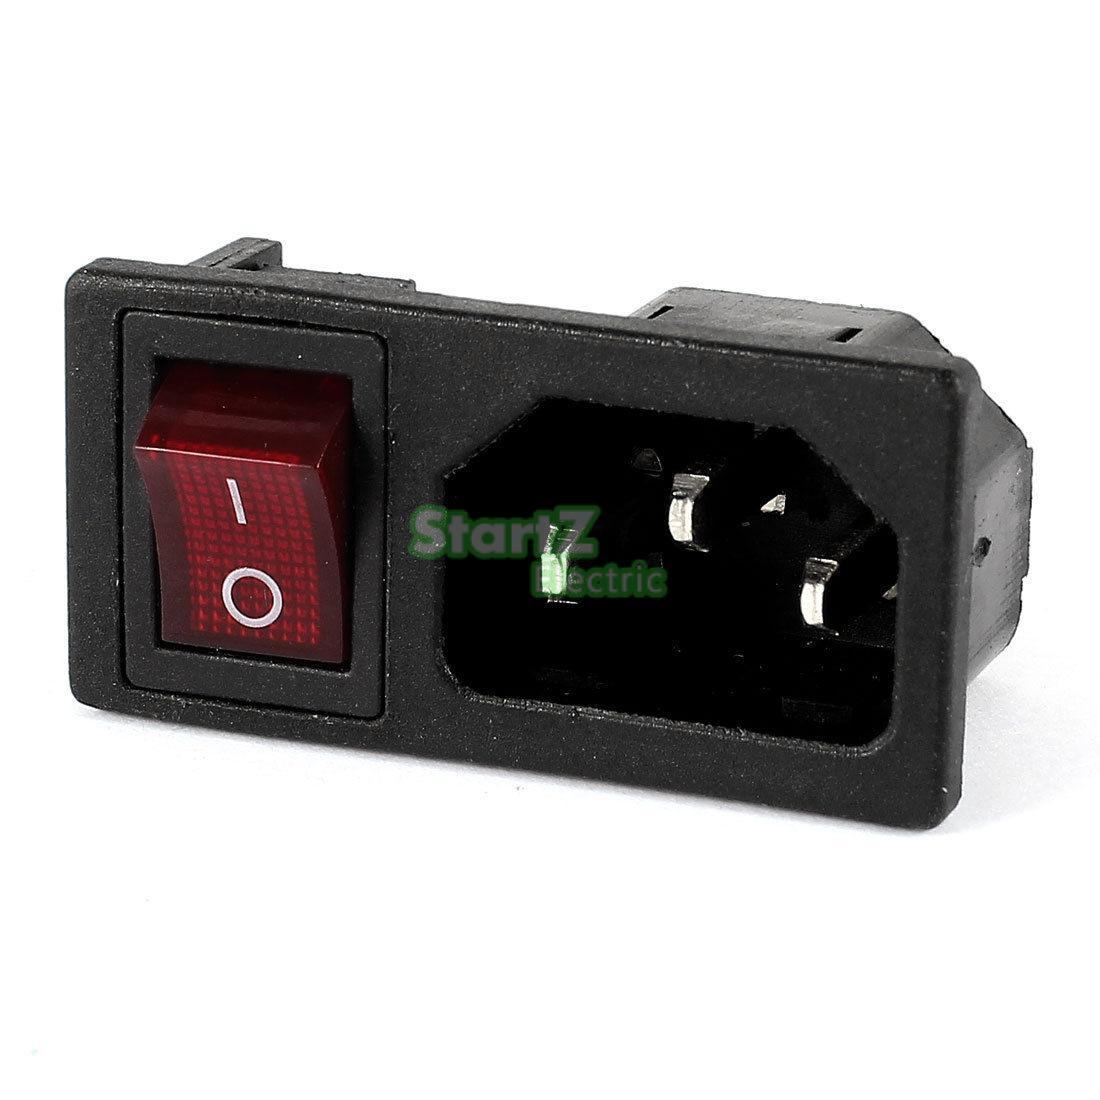 Panel IEC320 C14 Inlet Power Socket On/Off SPST Red Rocker Switch AC 250V 10A ac 250v 10a iec 320 c13 c14 inlet panel power socket w fuse holder